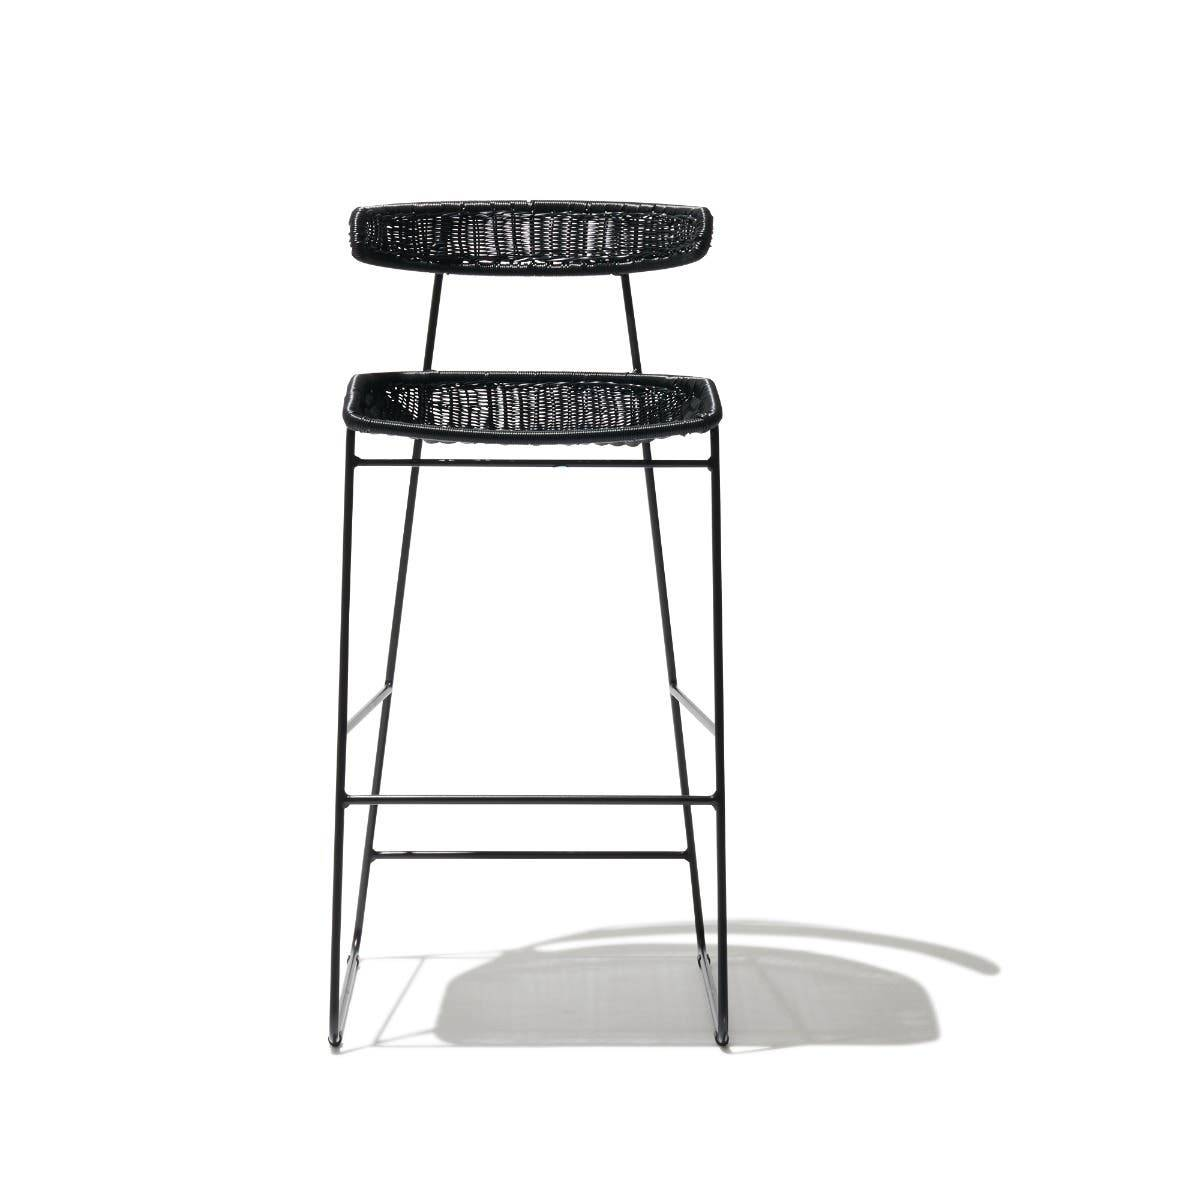 Industry West Rimrow Bar Stool Black